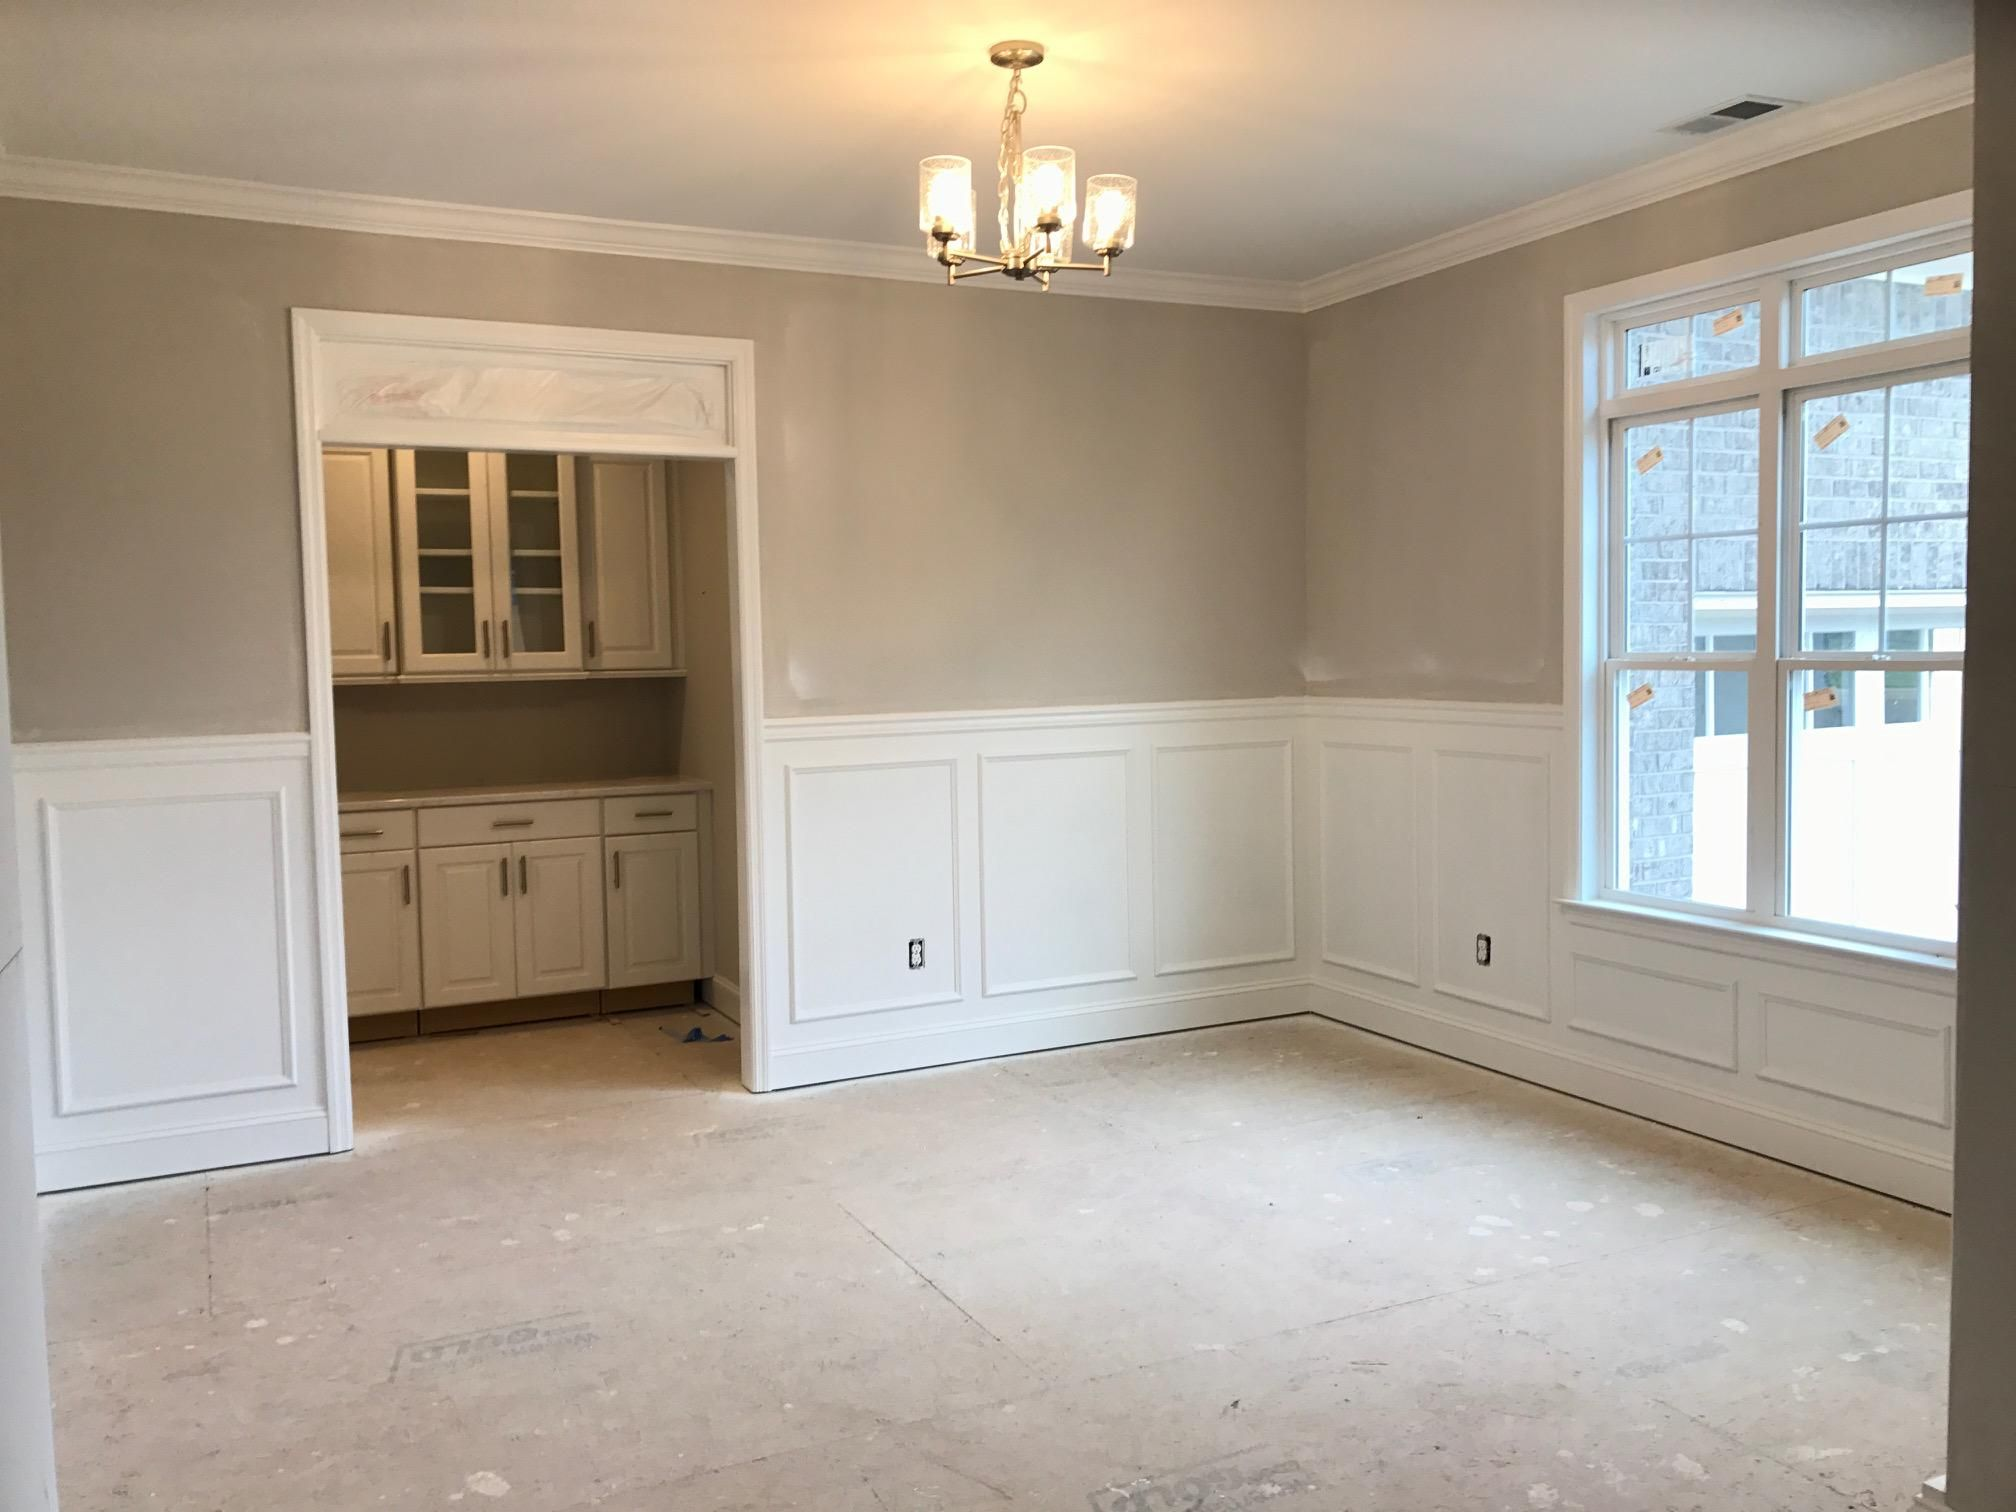 Dining room w/Butlers pantry in hallway